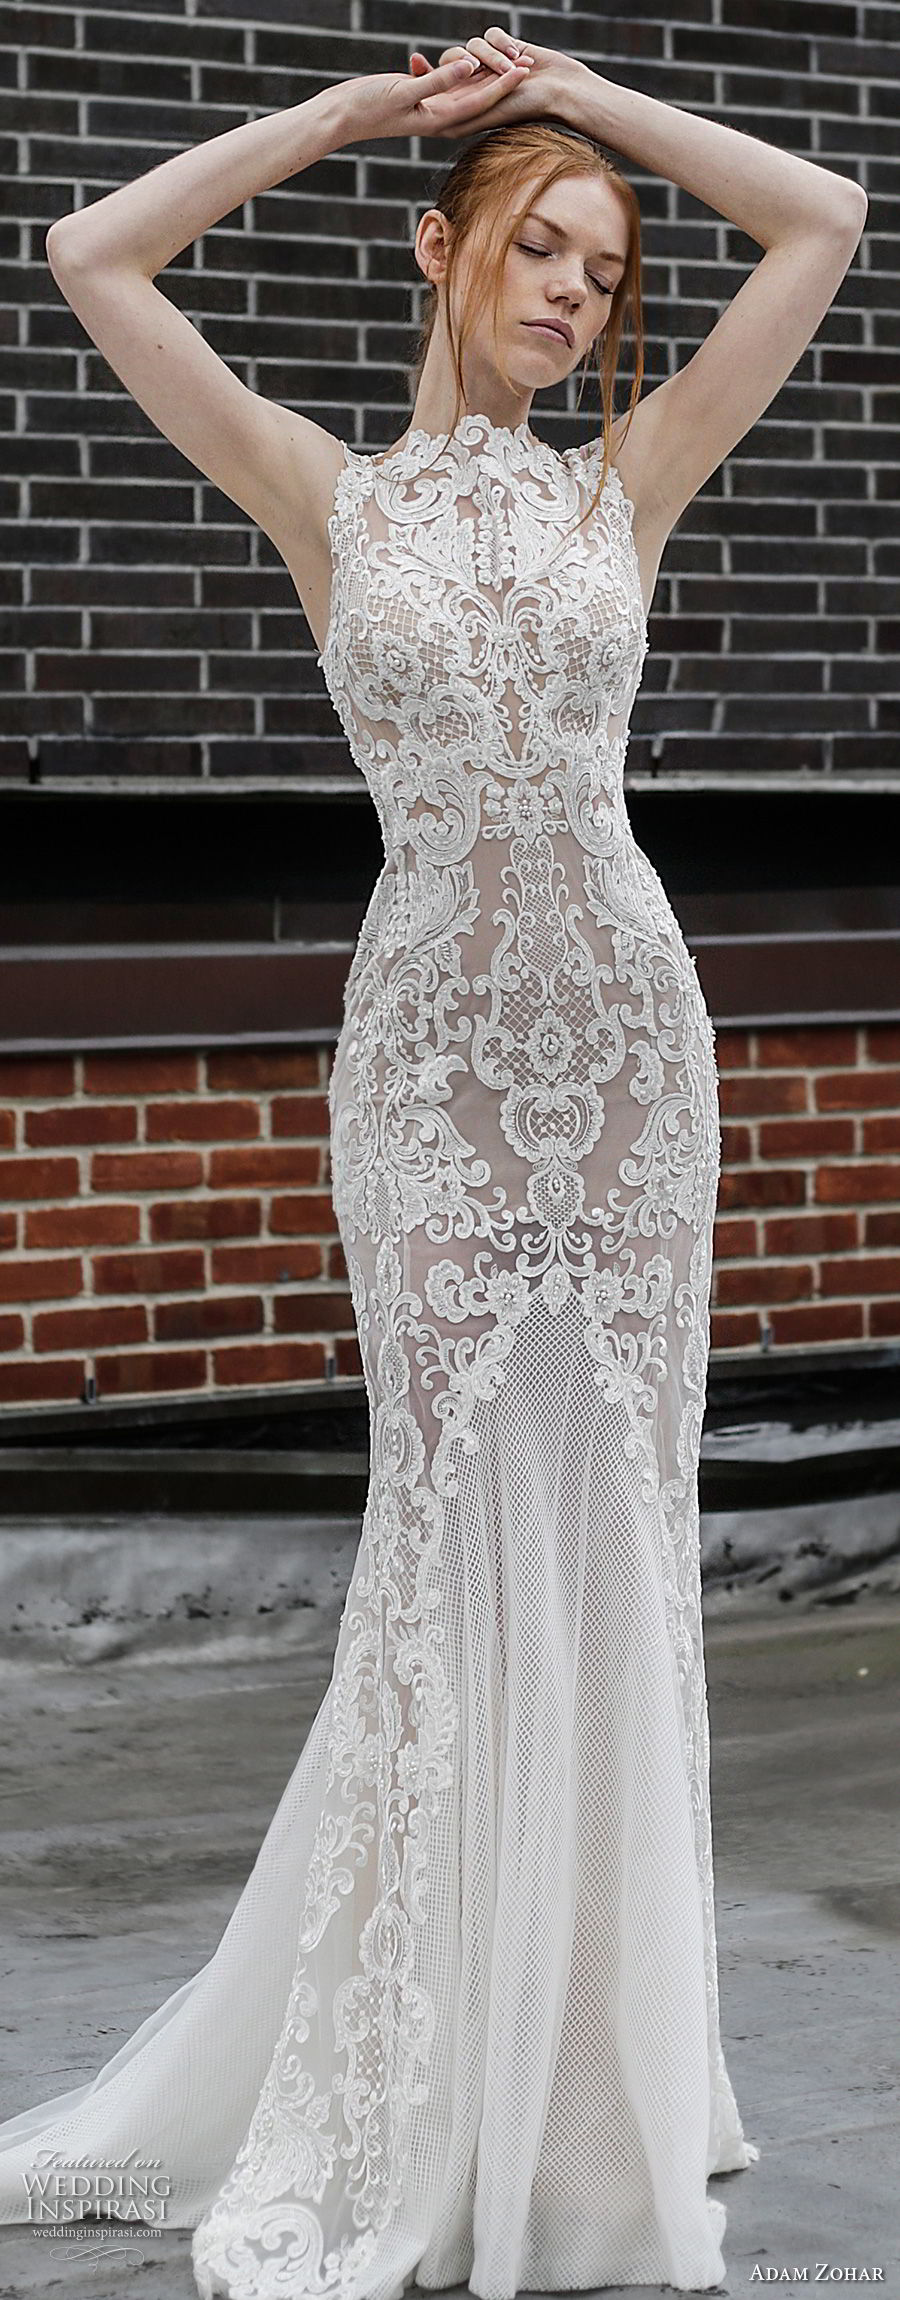 adam zohar 2017 bridal sleeveless jewel neck full embellishment elegant sheath wedding dress open v back sweep train (5) mv